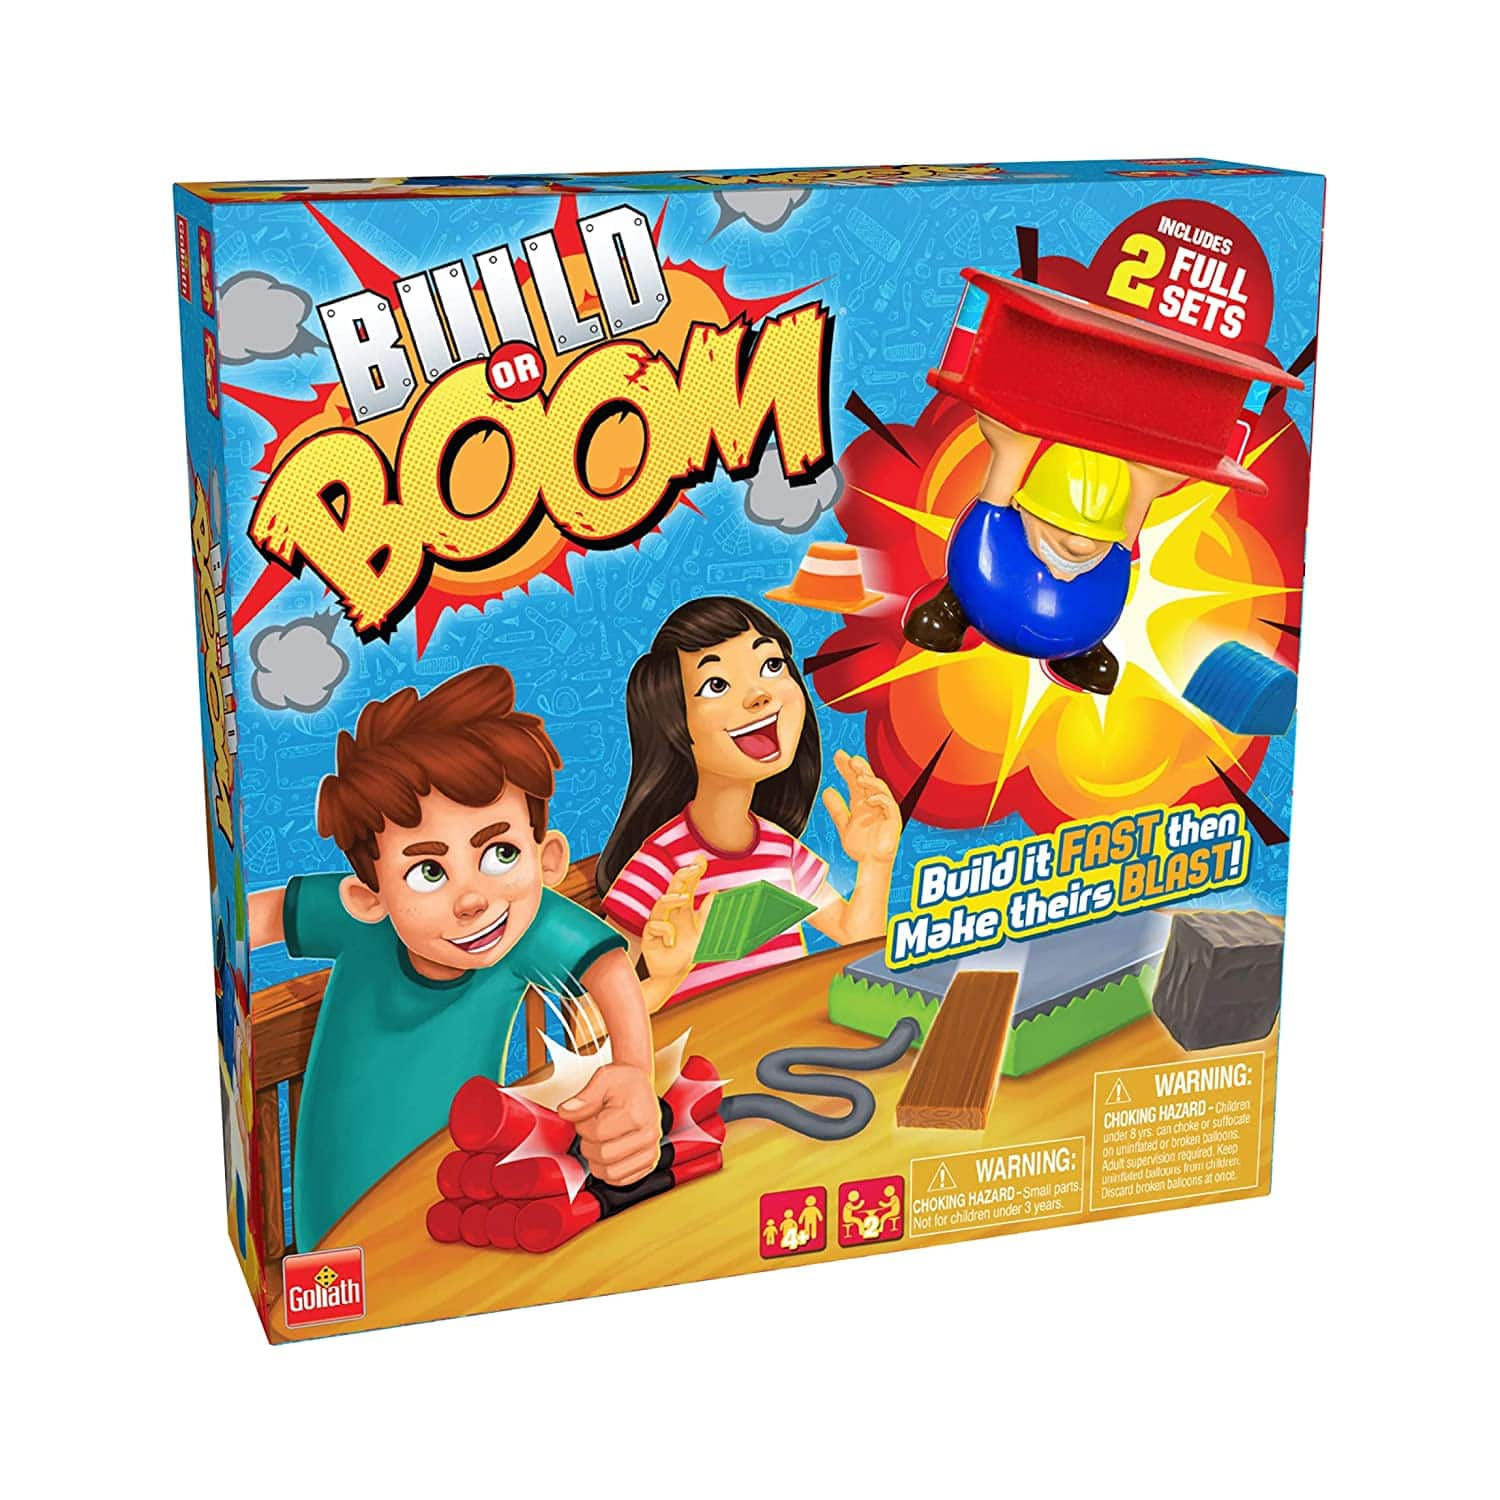 Goliath Games - Build Or Boom Game for $9.88 @ Walmart